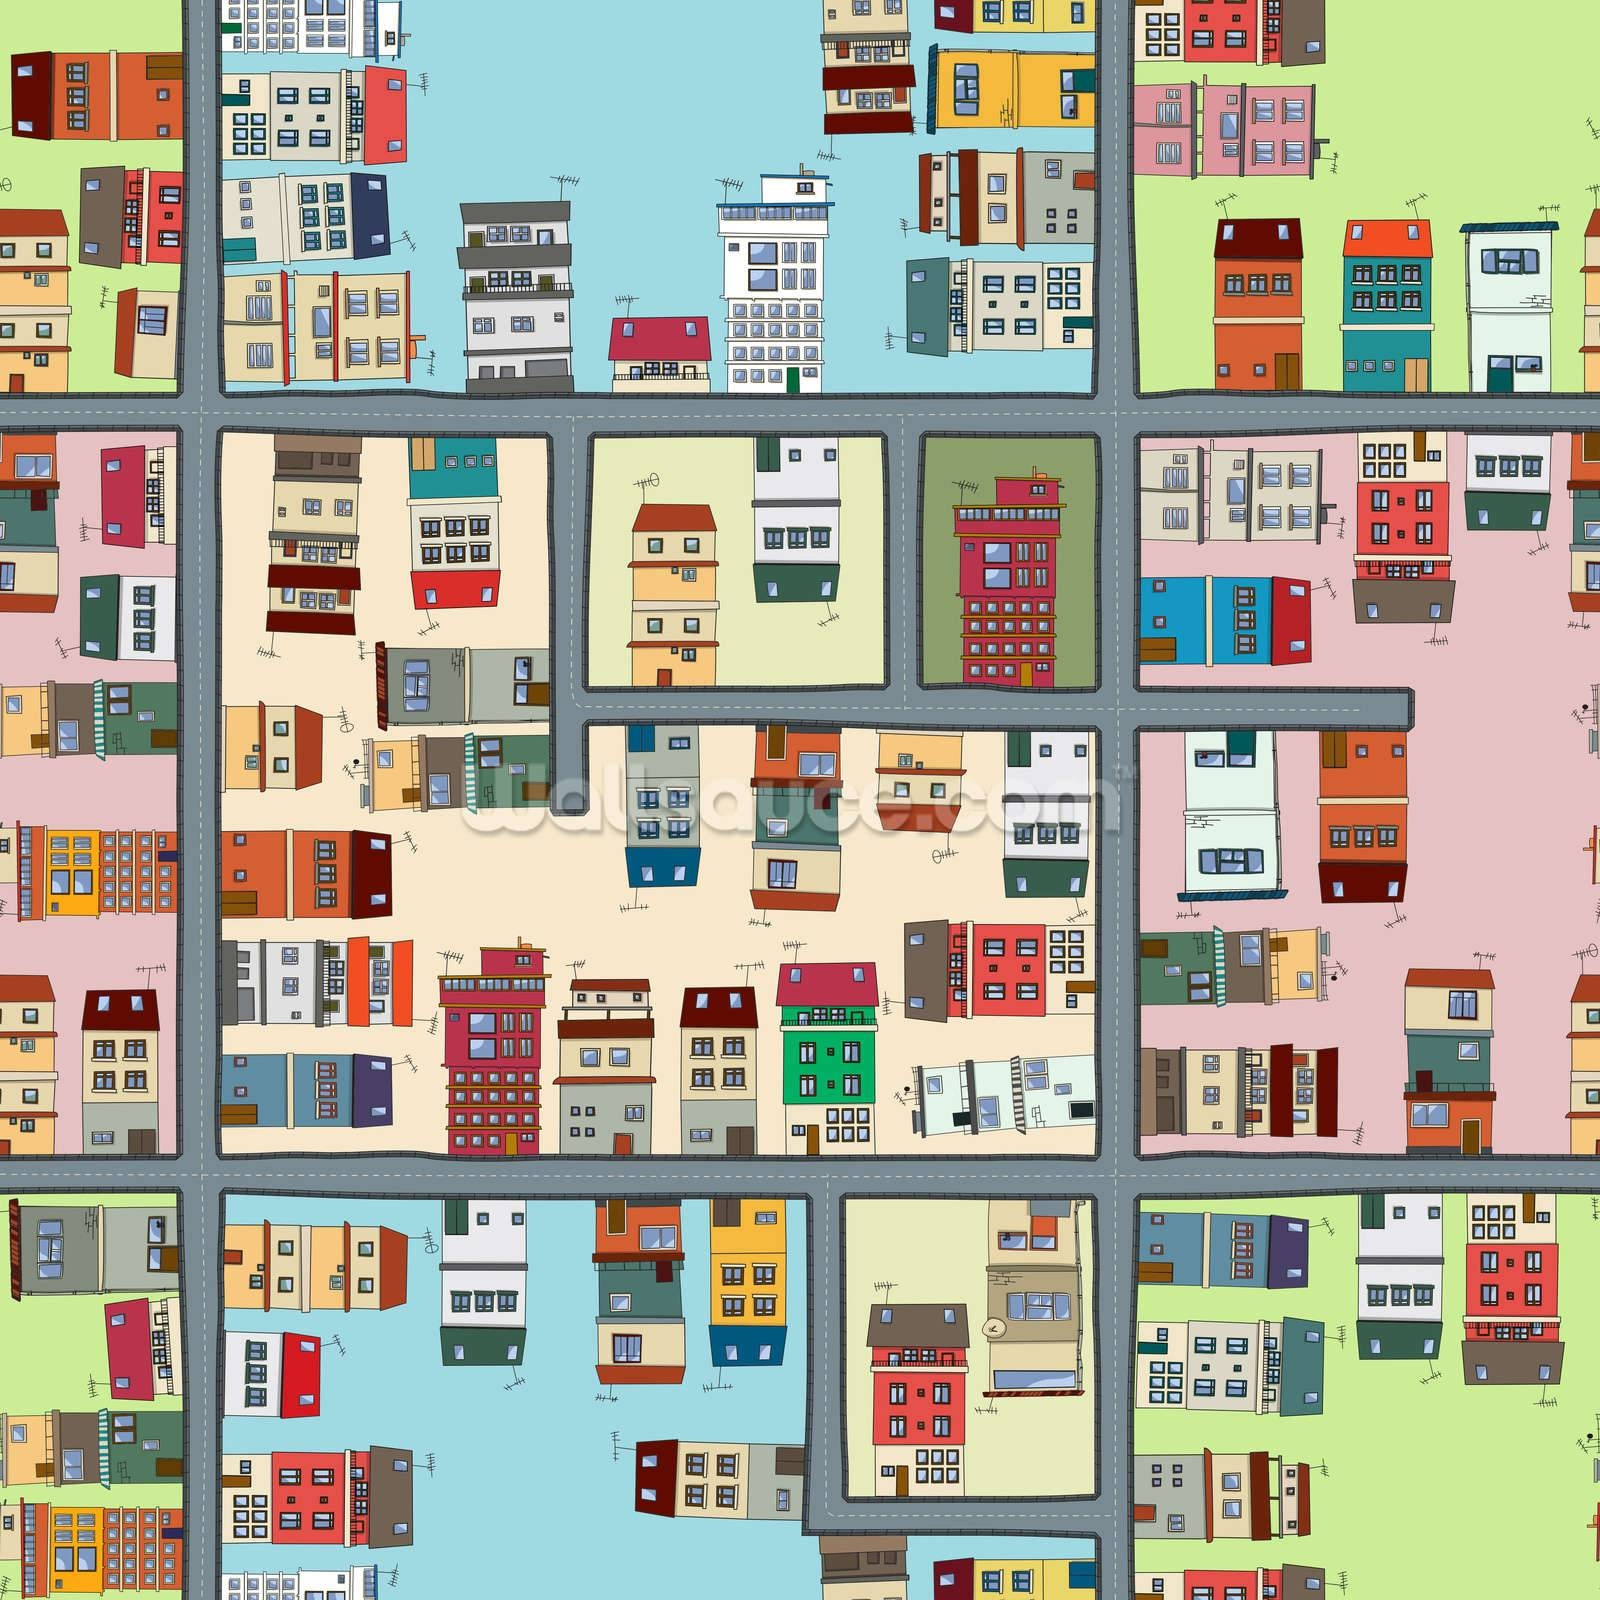 Cartoon Street Map Wallpaper Wall Mural | Wallsauce Usa With Regard To 2018 Street Map Wall Art (View 3 of 20)